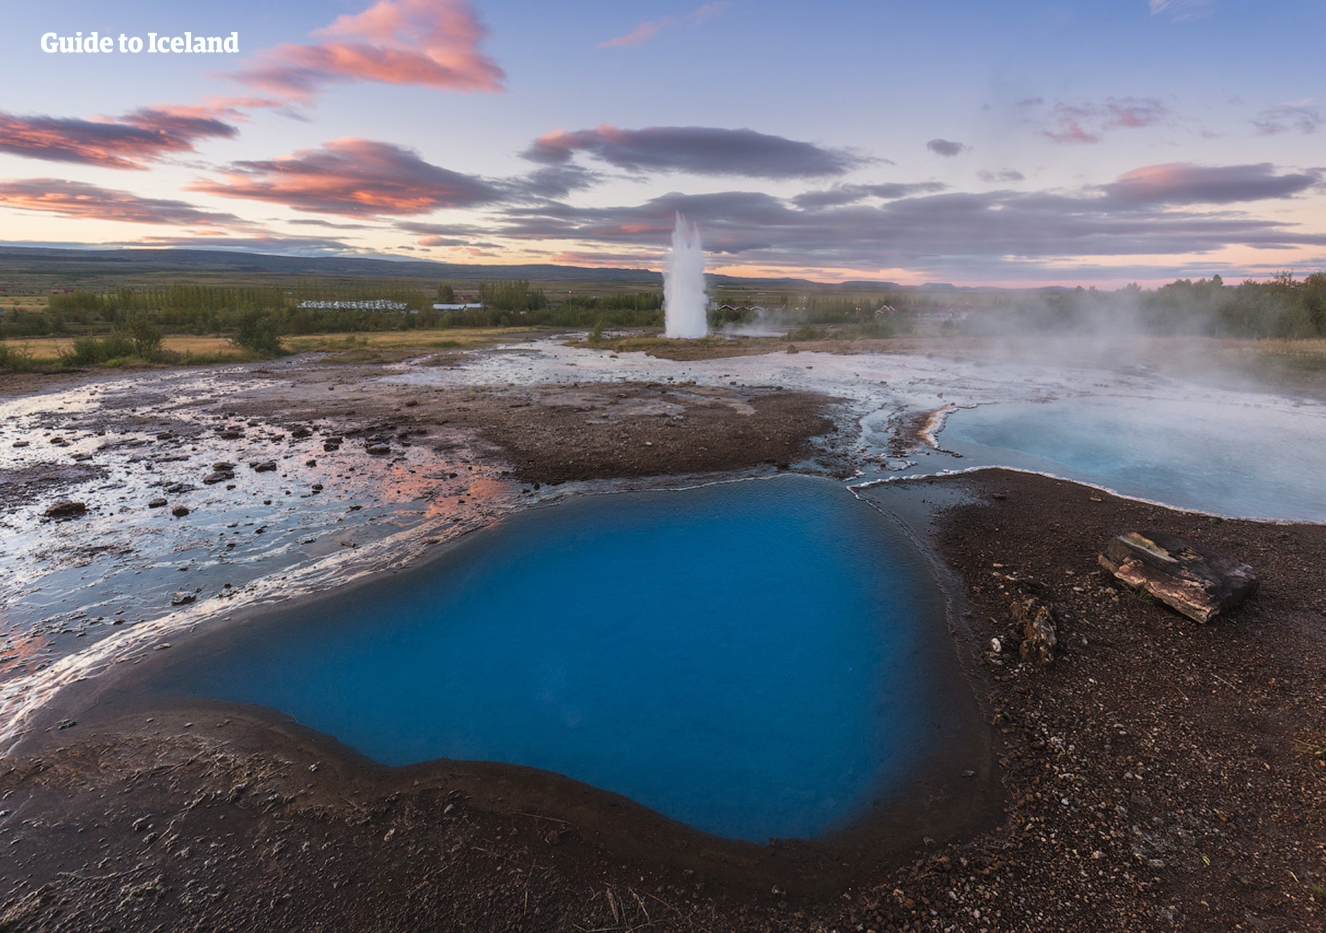 The geyser Strokkur in front of azure coloured fumaroles in the geothermal valley Haukadalur in South Iceland.